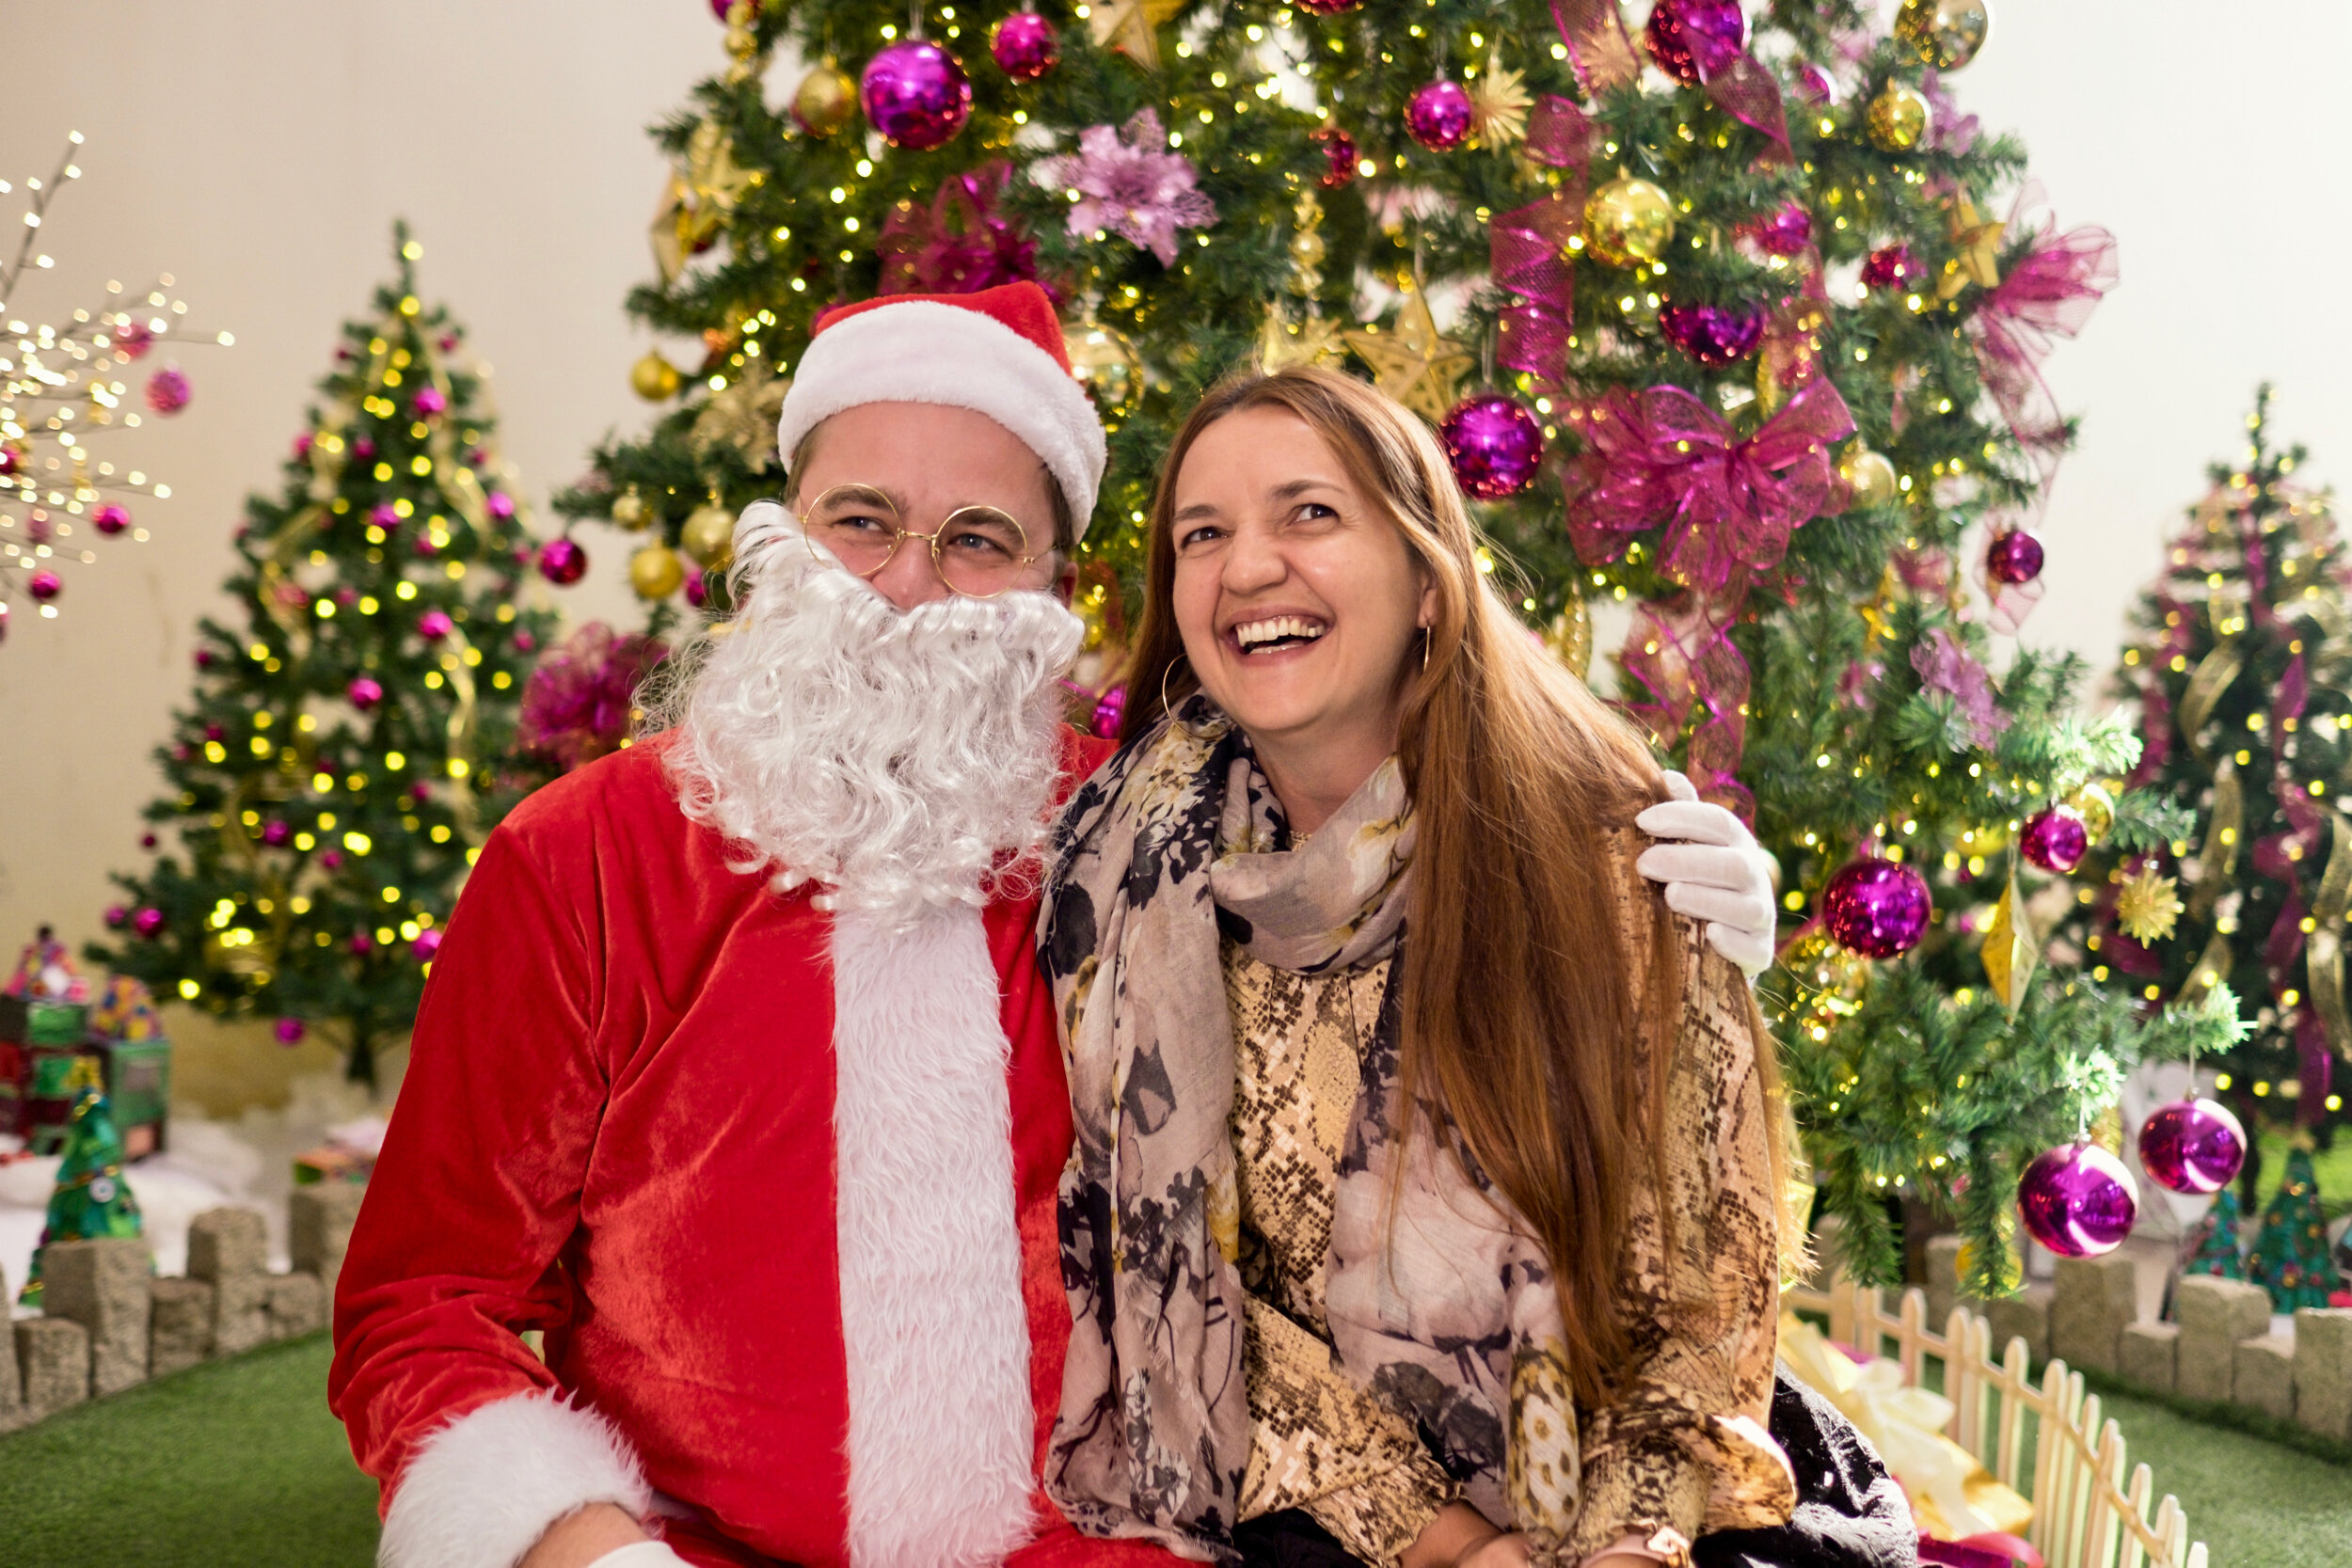 Photoshoot with Santa Clause-704.jpg